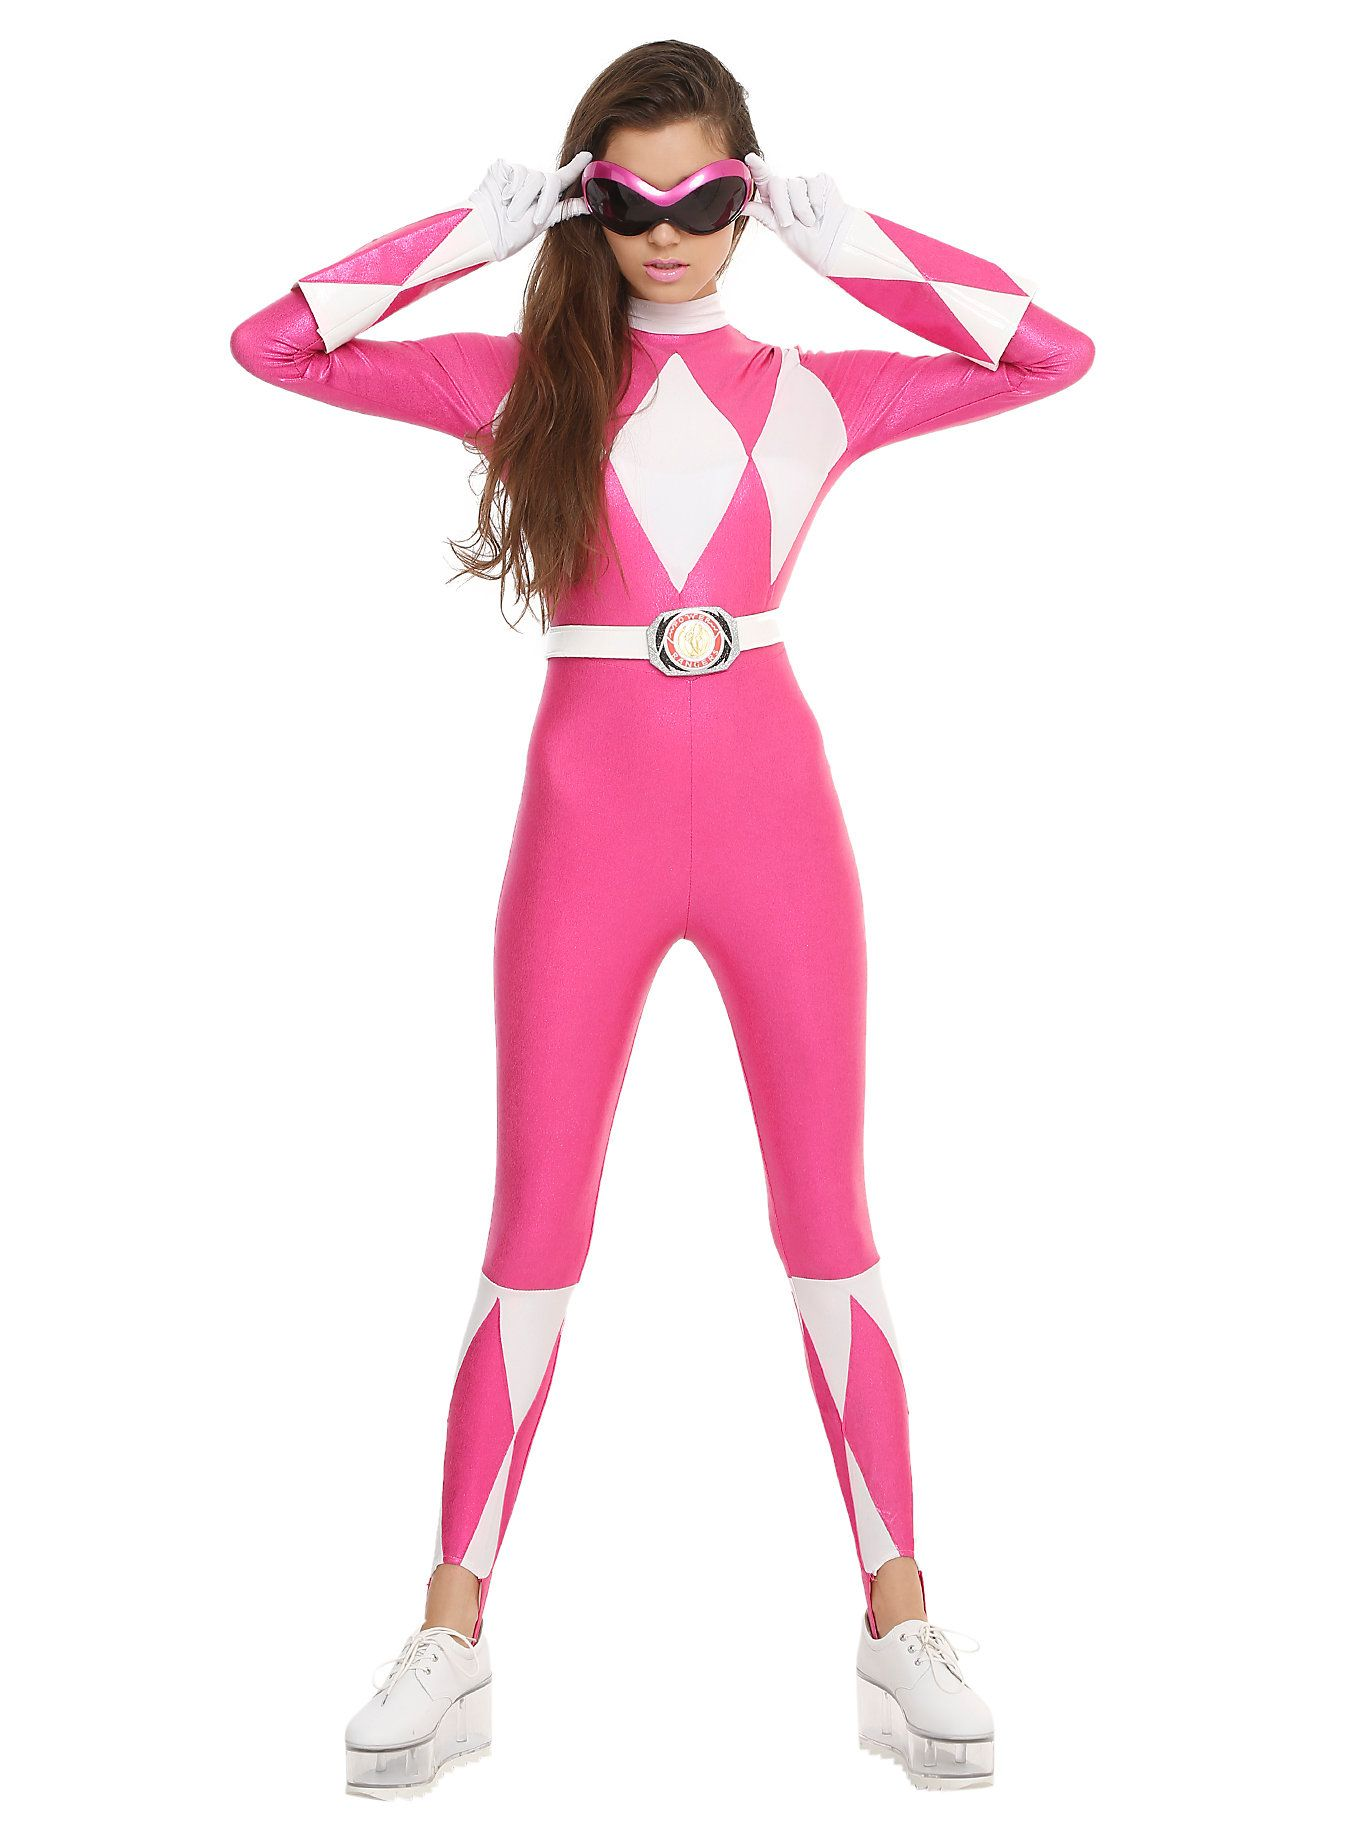 mighty morphin power rangers pink ranger costume. Black Bedroom Furniture Sets. Home Design Ideas